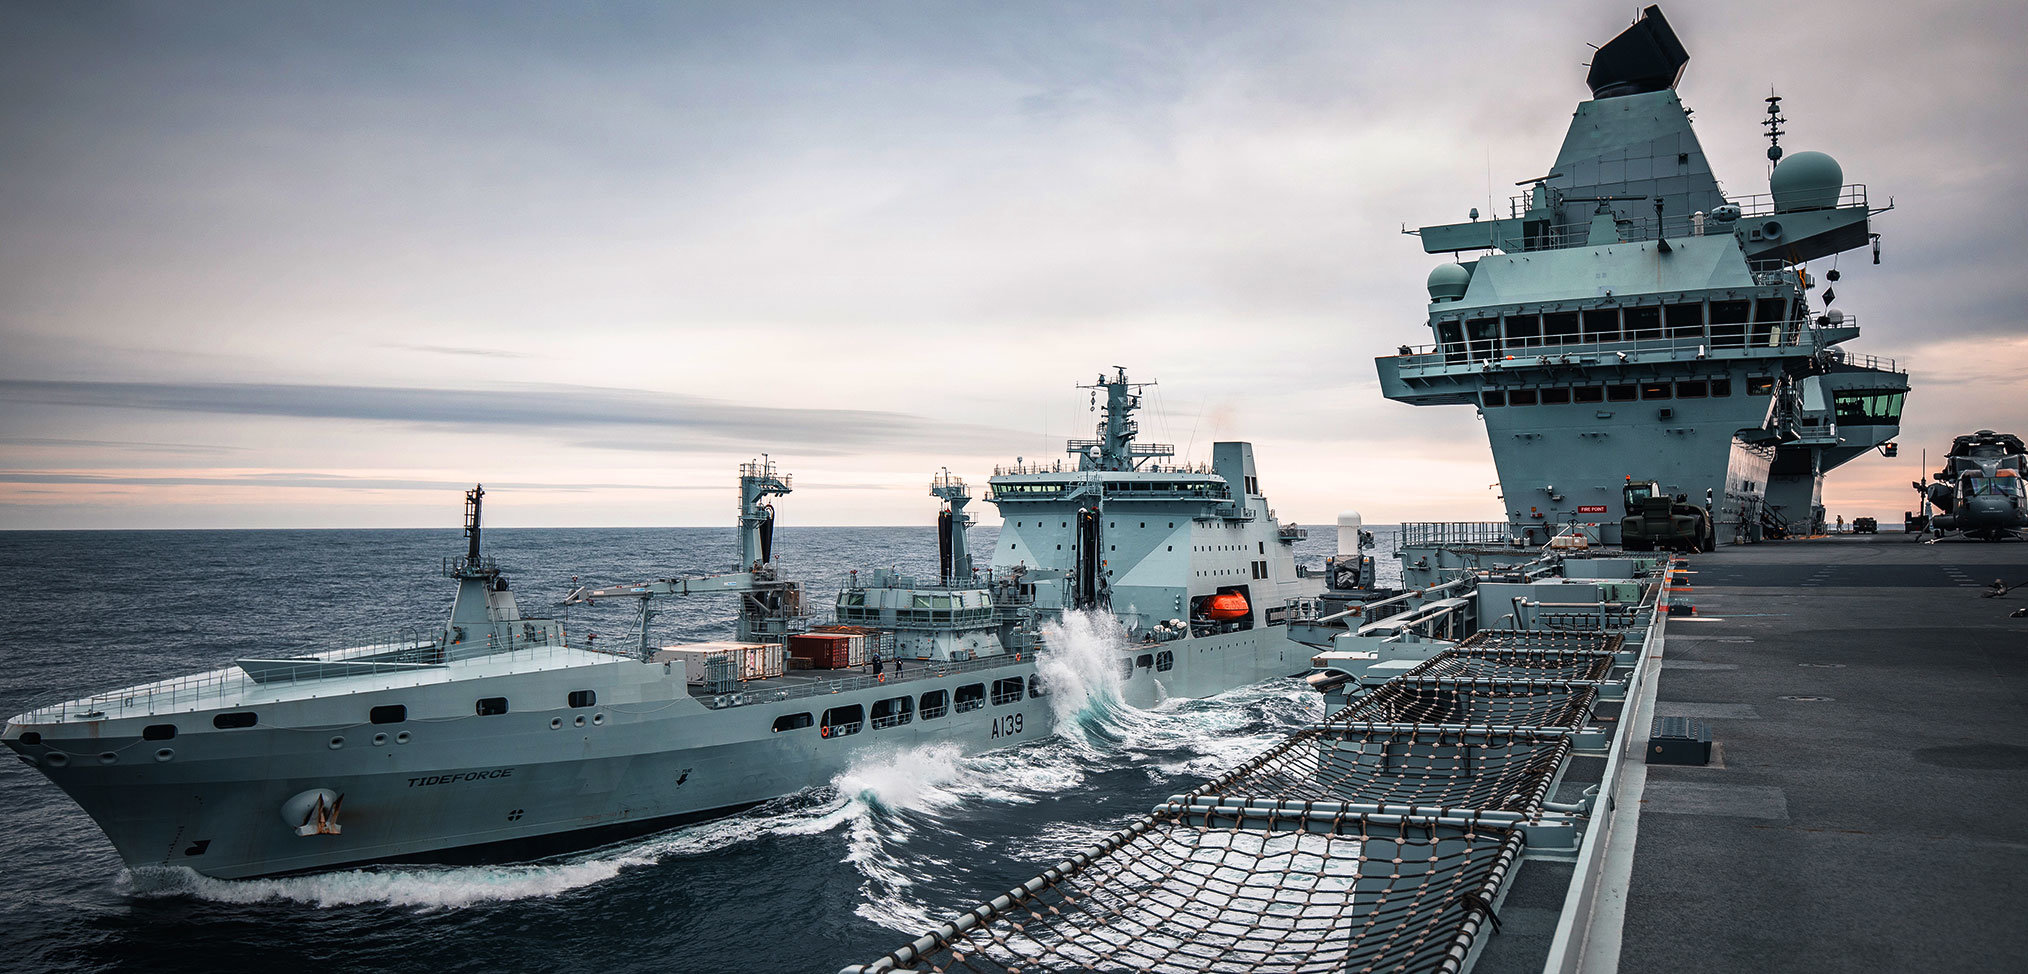 Photo essay: HMS Queen Elizabeth Westlant 19 deployment – Part 1